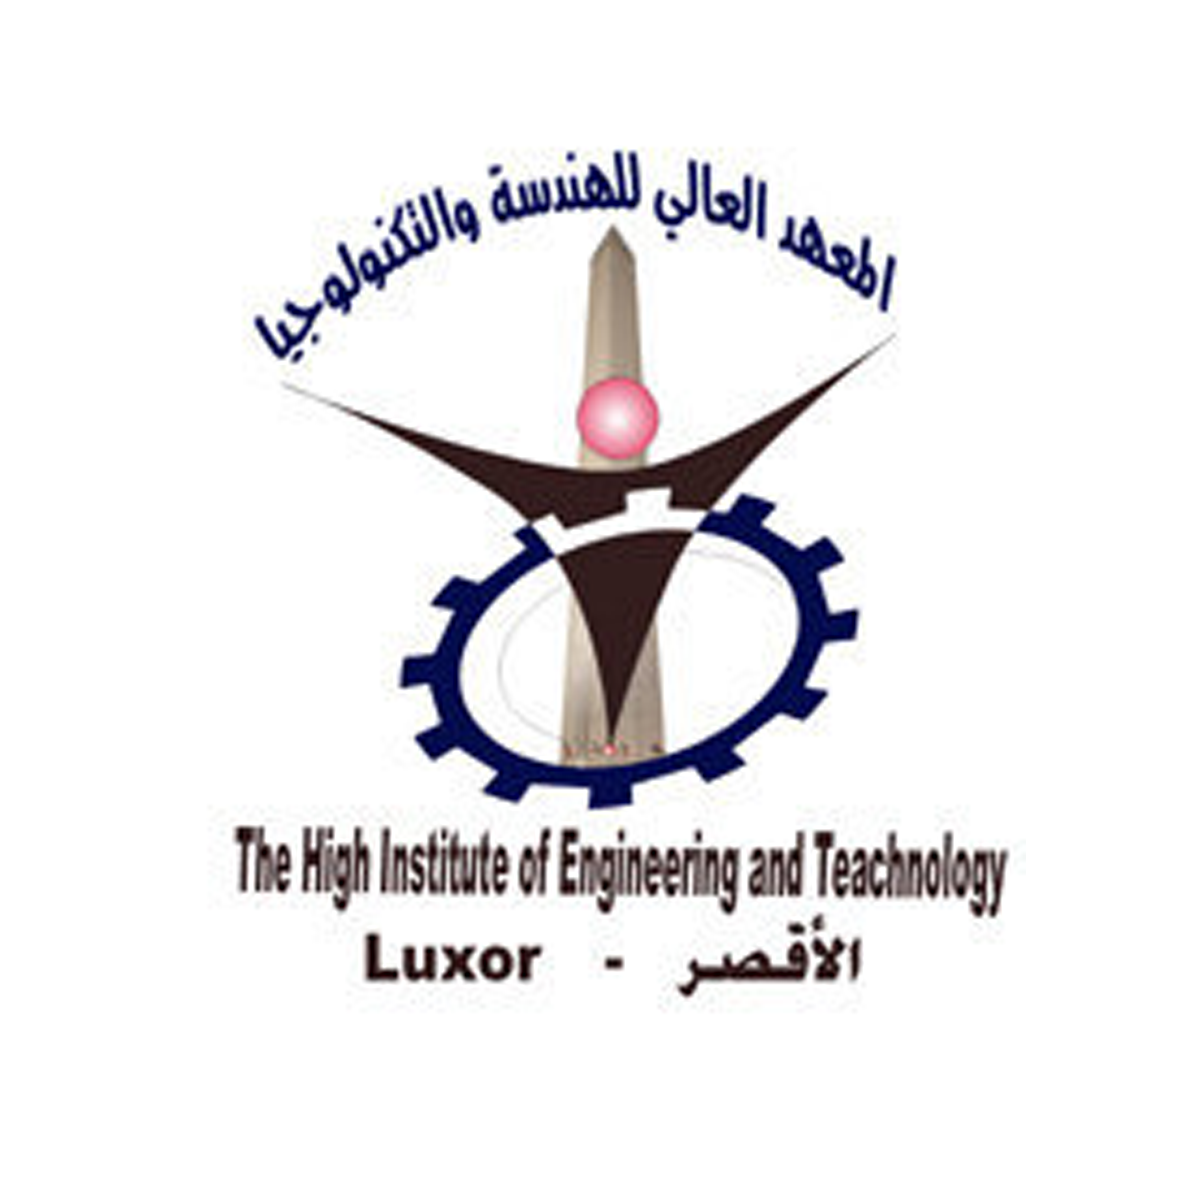 Higher Institute of Engineering and Technology - Al-Tud Luxor